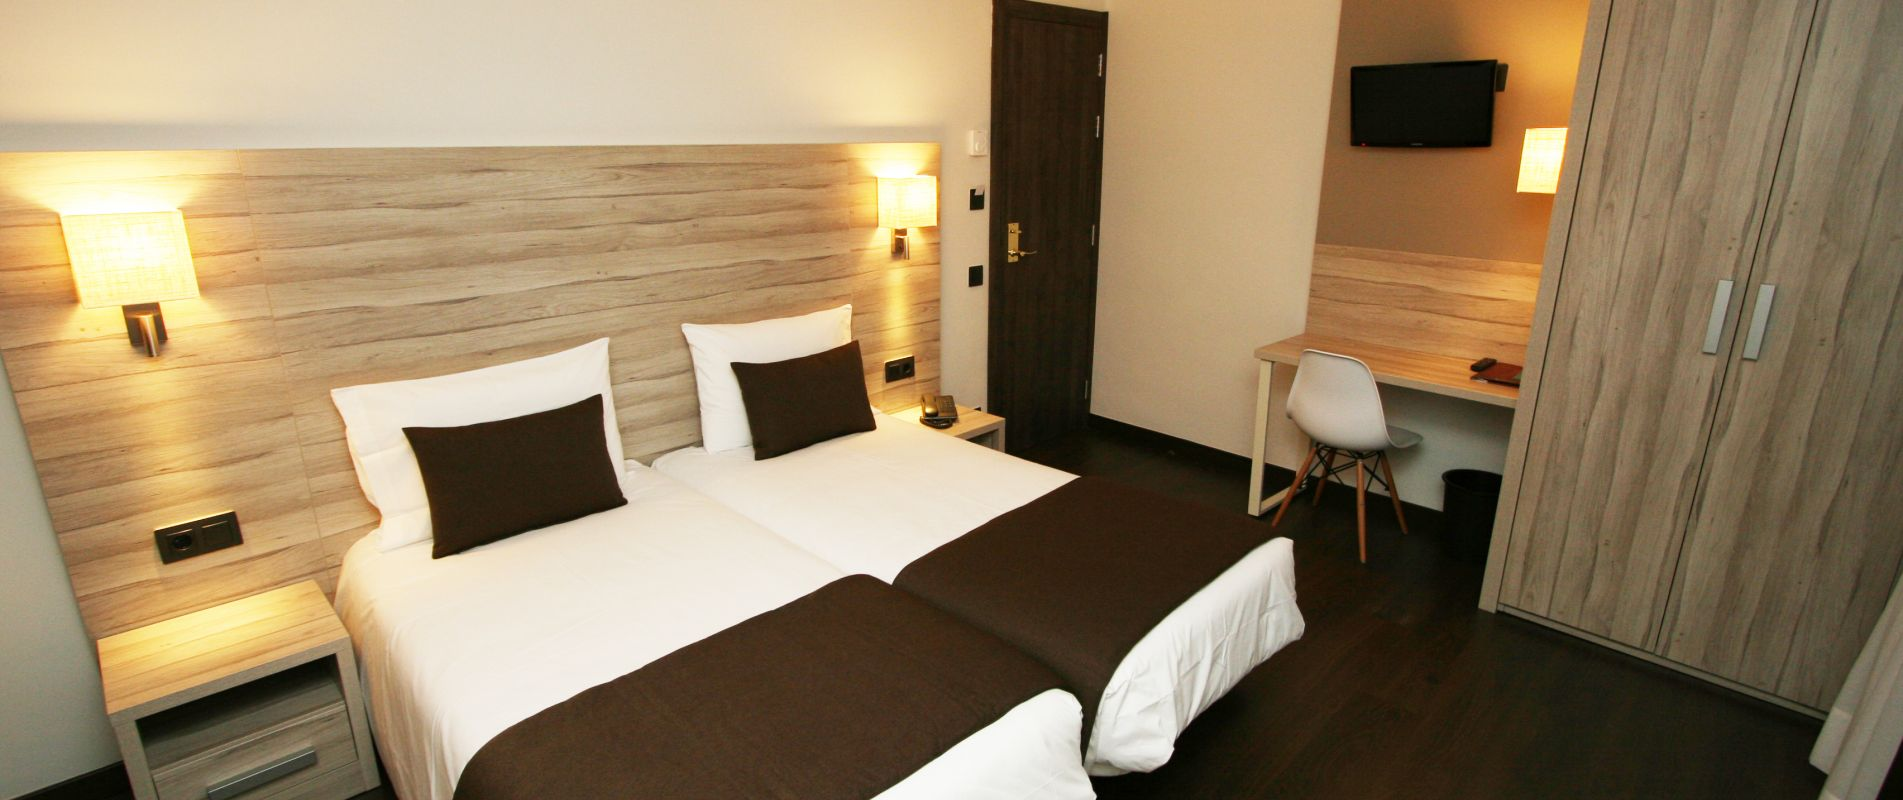 COMFORTABLE ROOMS FOR YOUR STAY IN ANDORRA